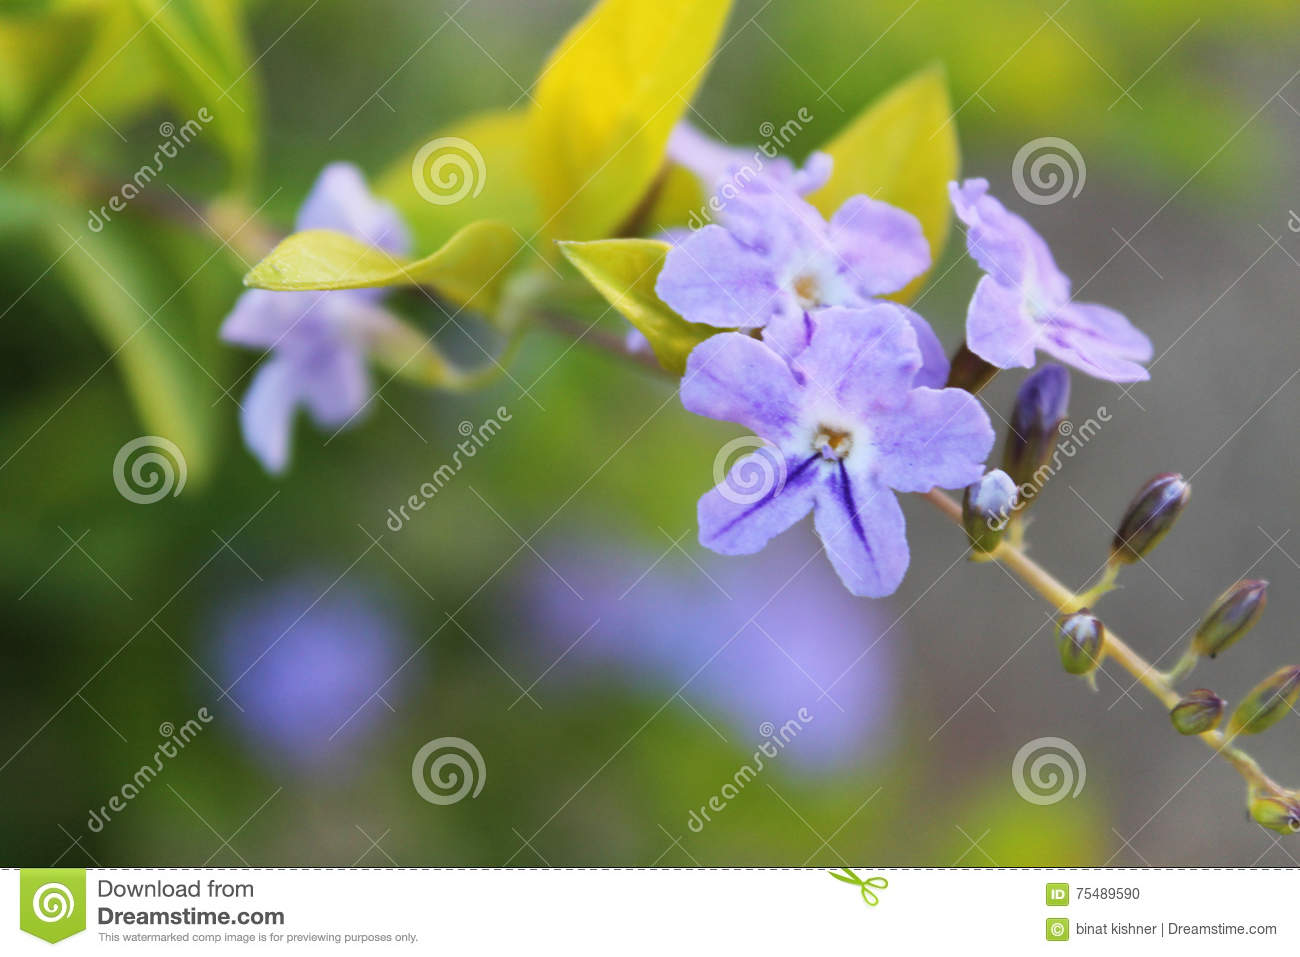 Many Small Purple Flowers Growing On A Tree Stock Photo Image Of